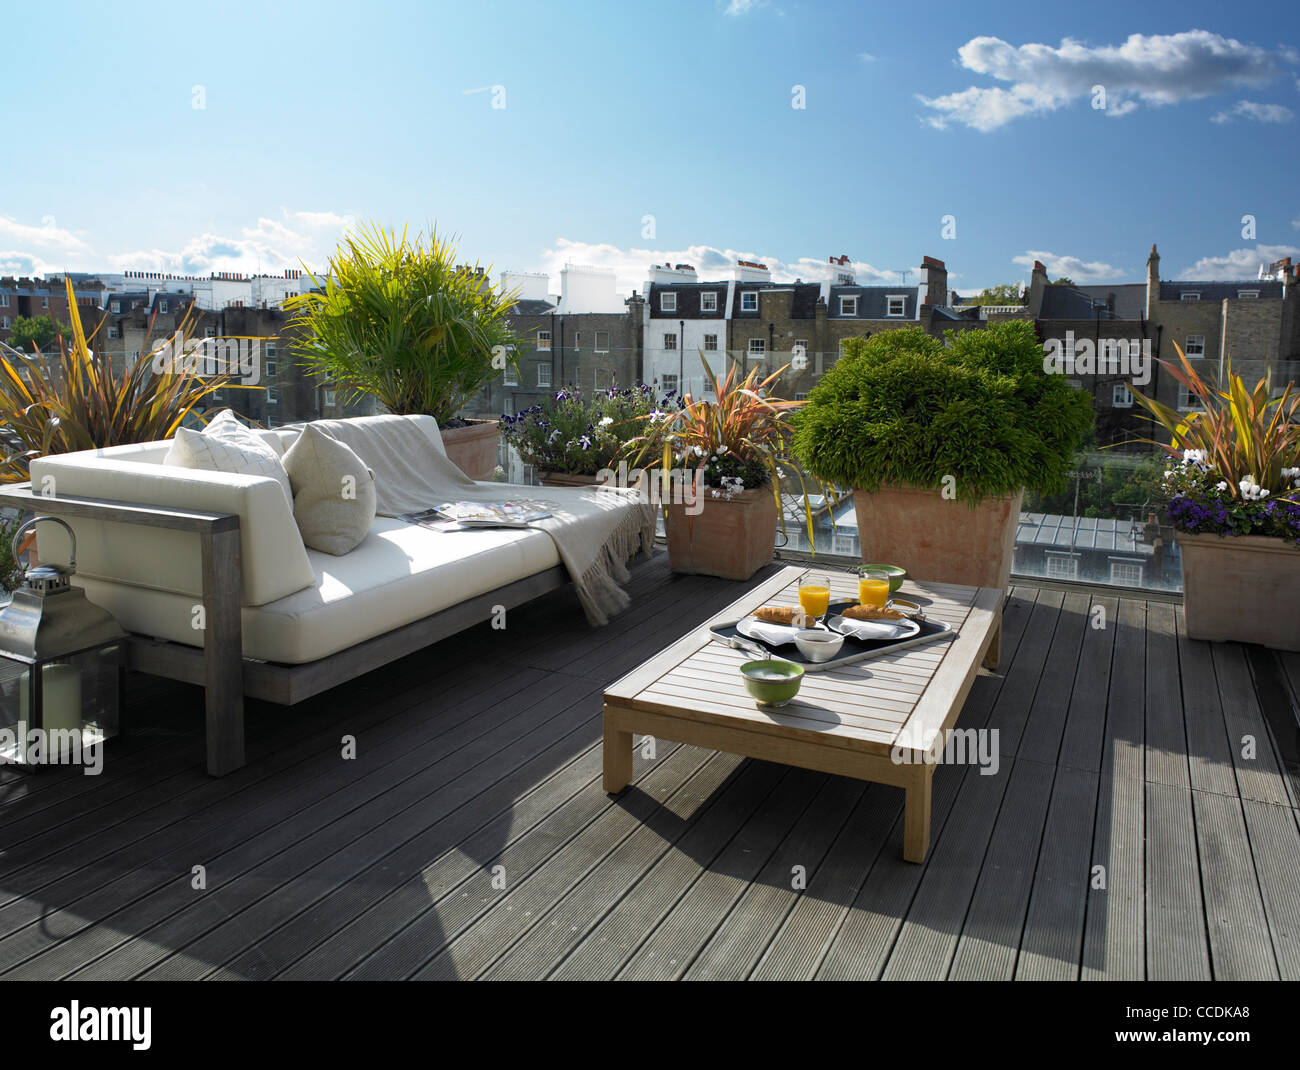 Private penthouse apartment in Belgravia, London. Outdoor terrace adjoining  main bedroom